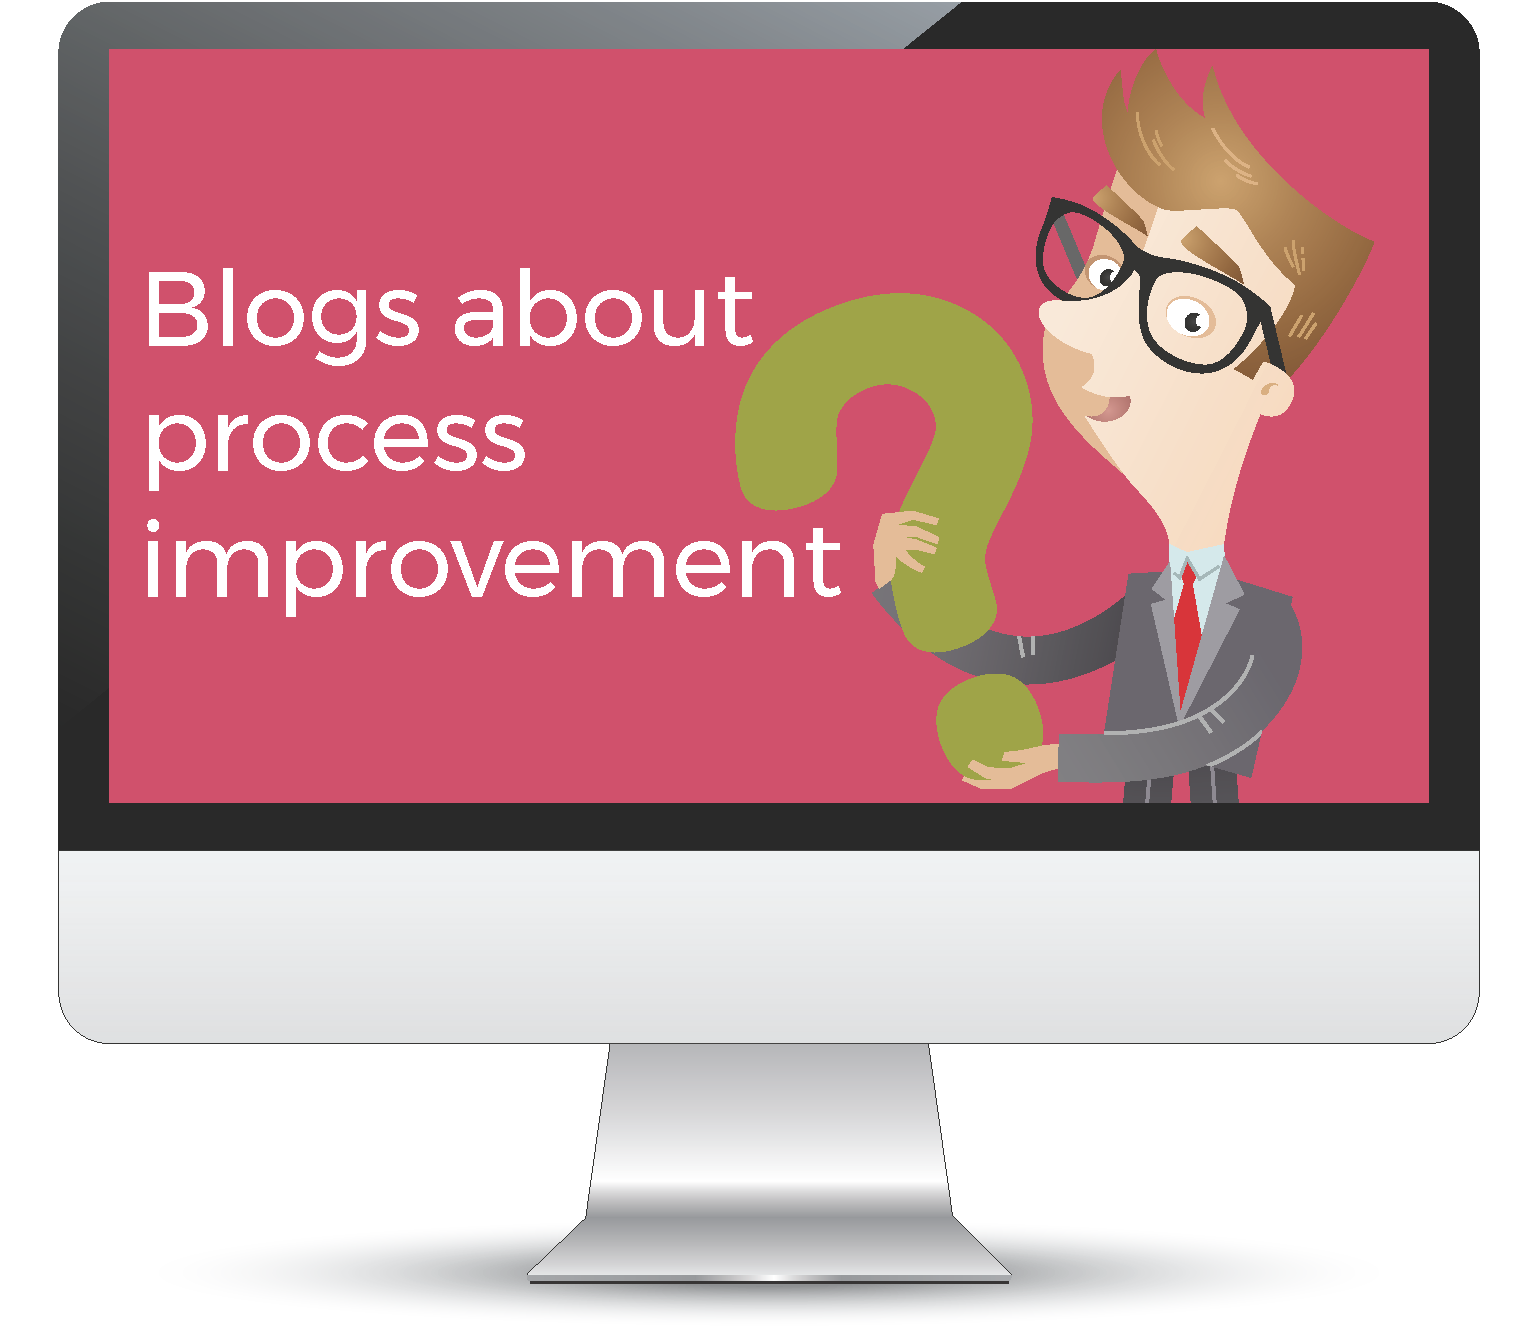 Process improvement blog